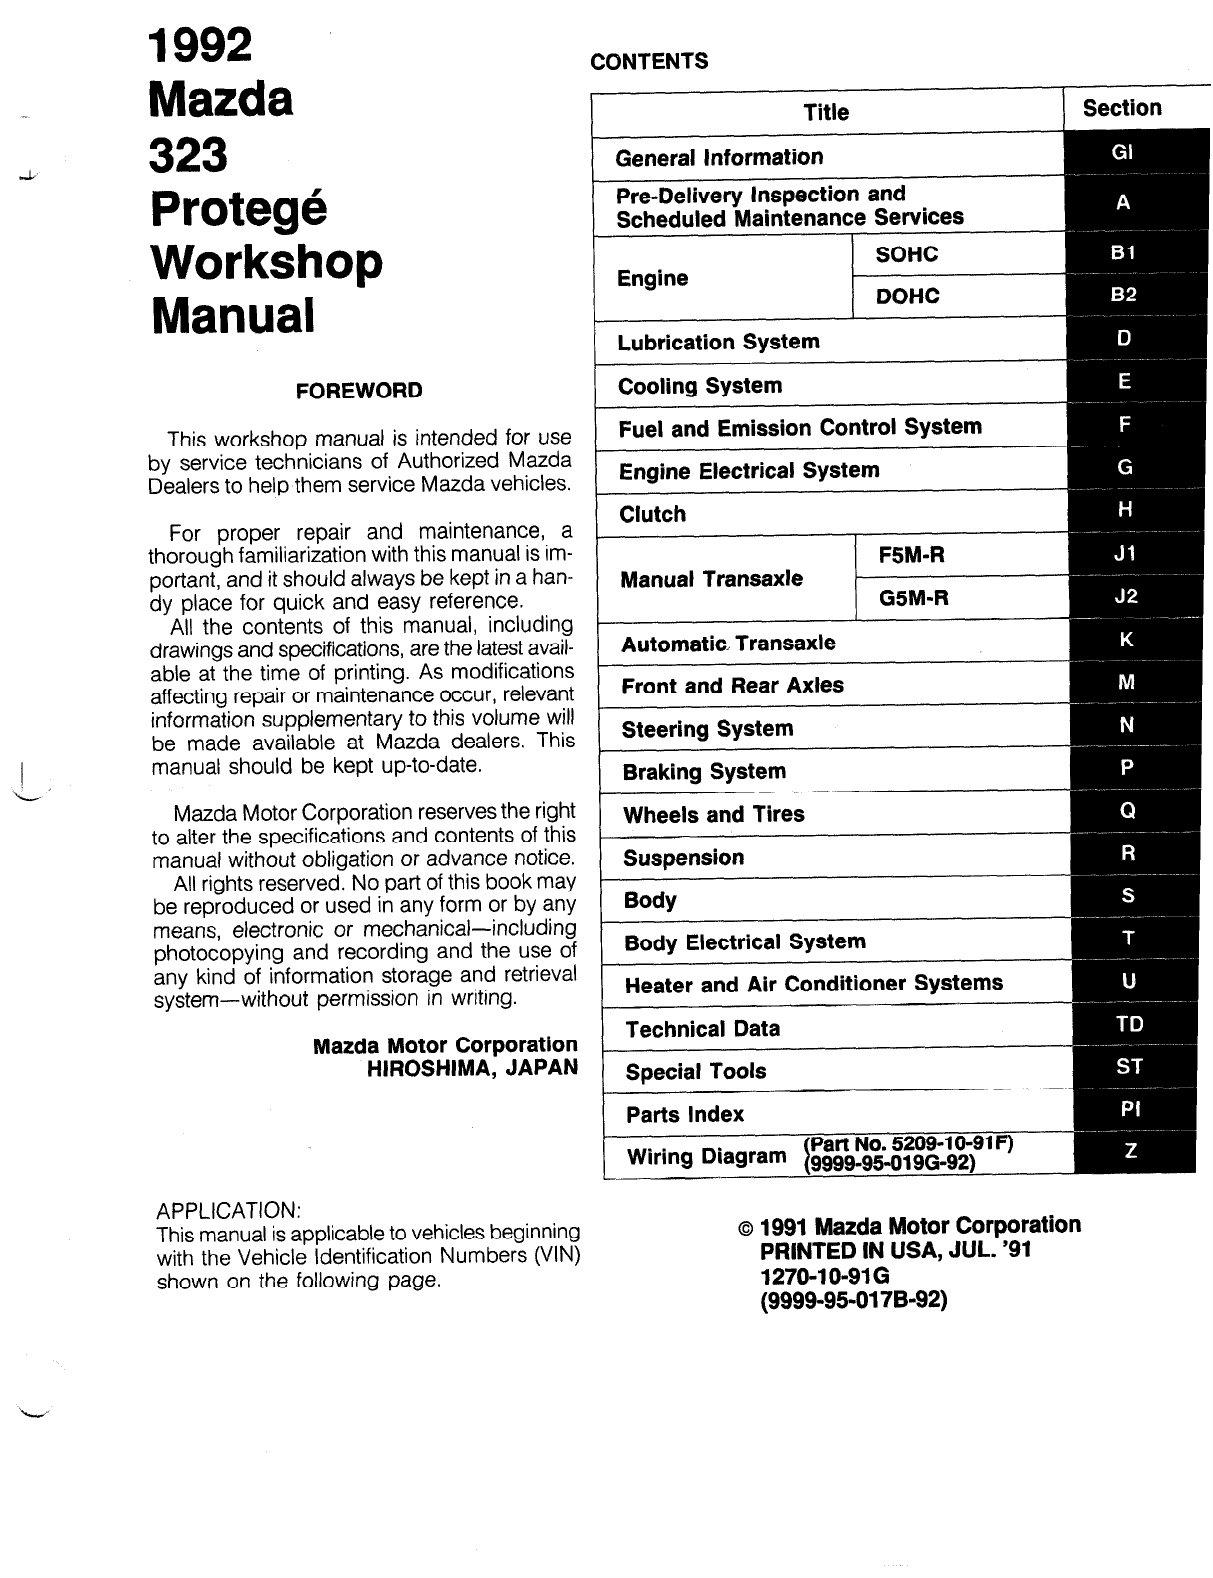 mazda protege 1992 workshop manual pdf rh manuals co